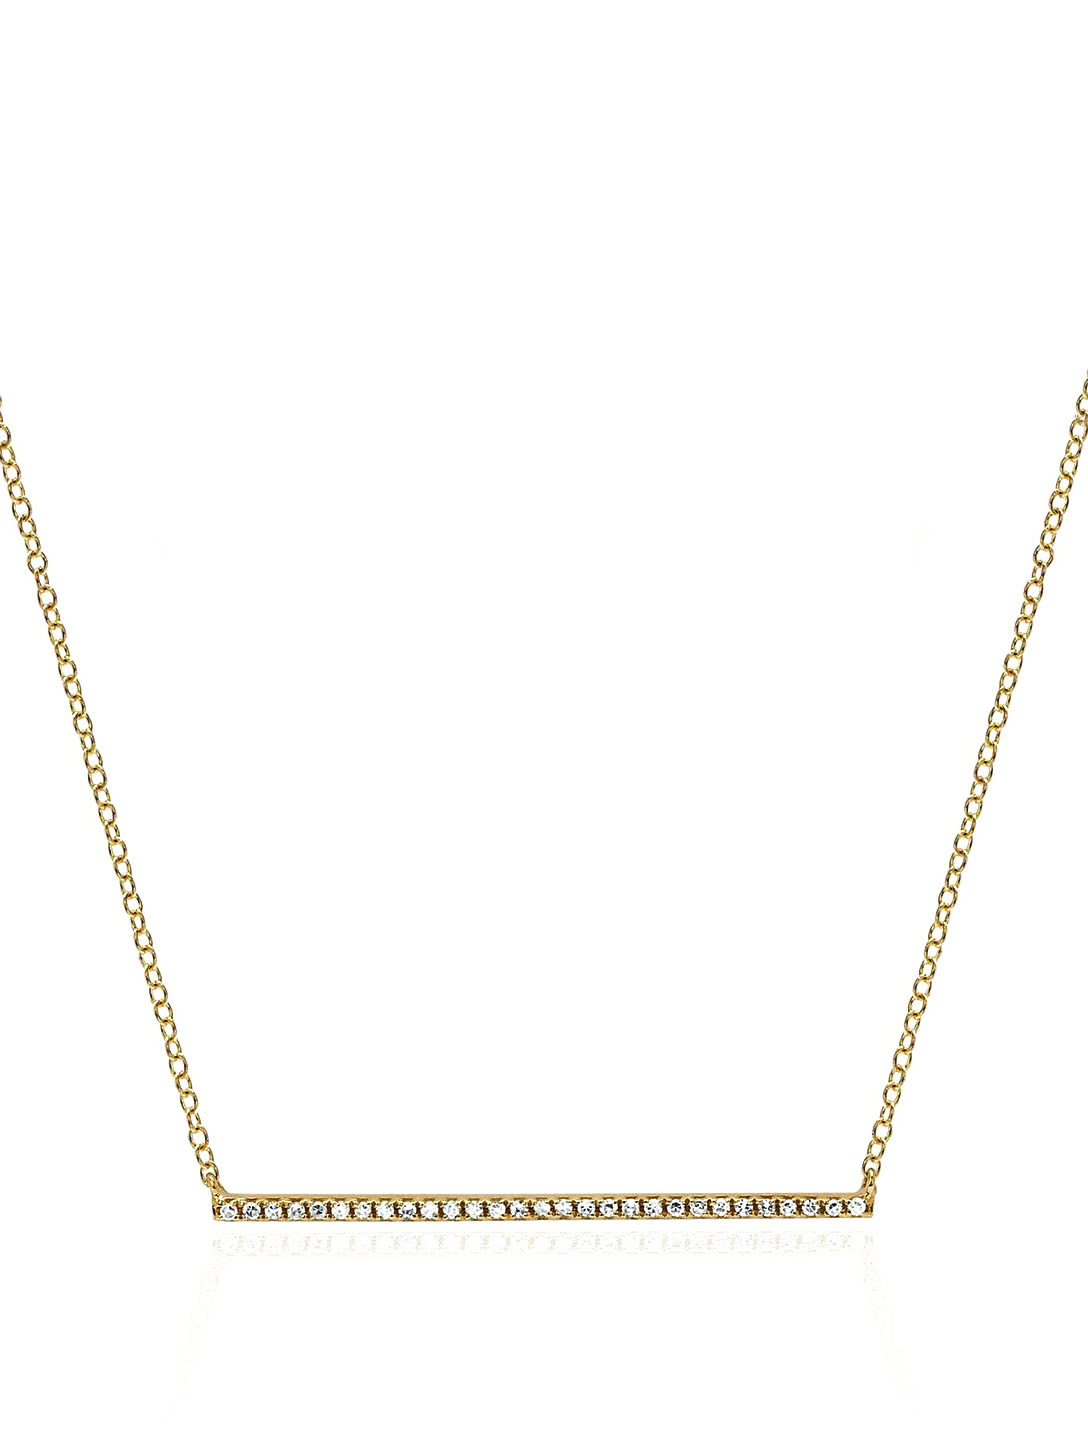 EF COLLECTION 14K Gold Diamond Bar Necklace With Diamonds Women's Metallic